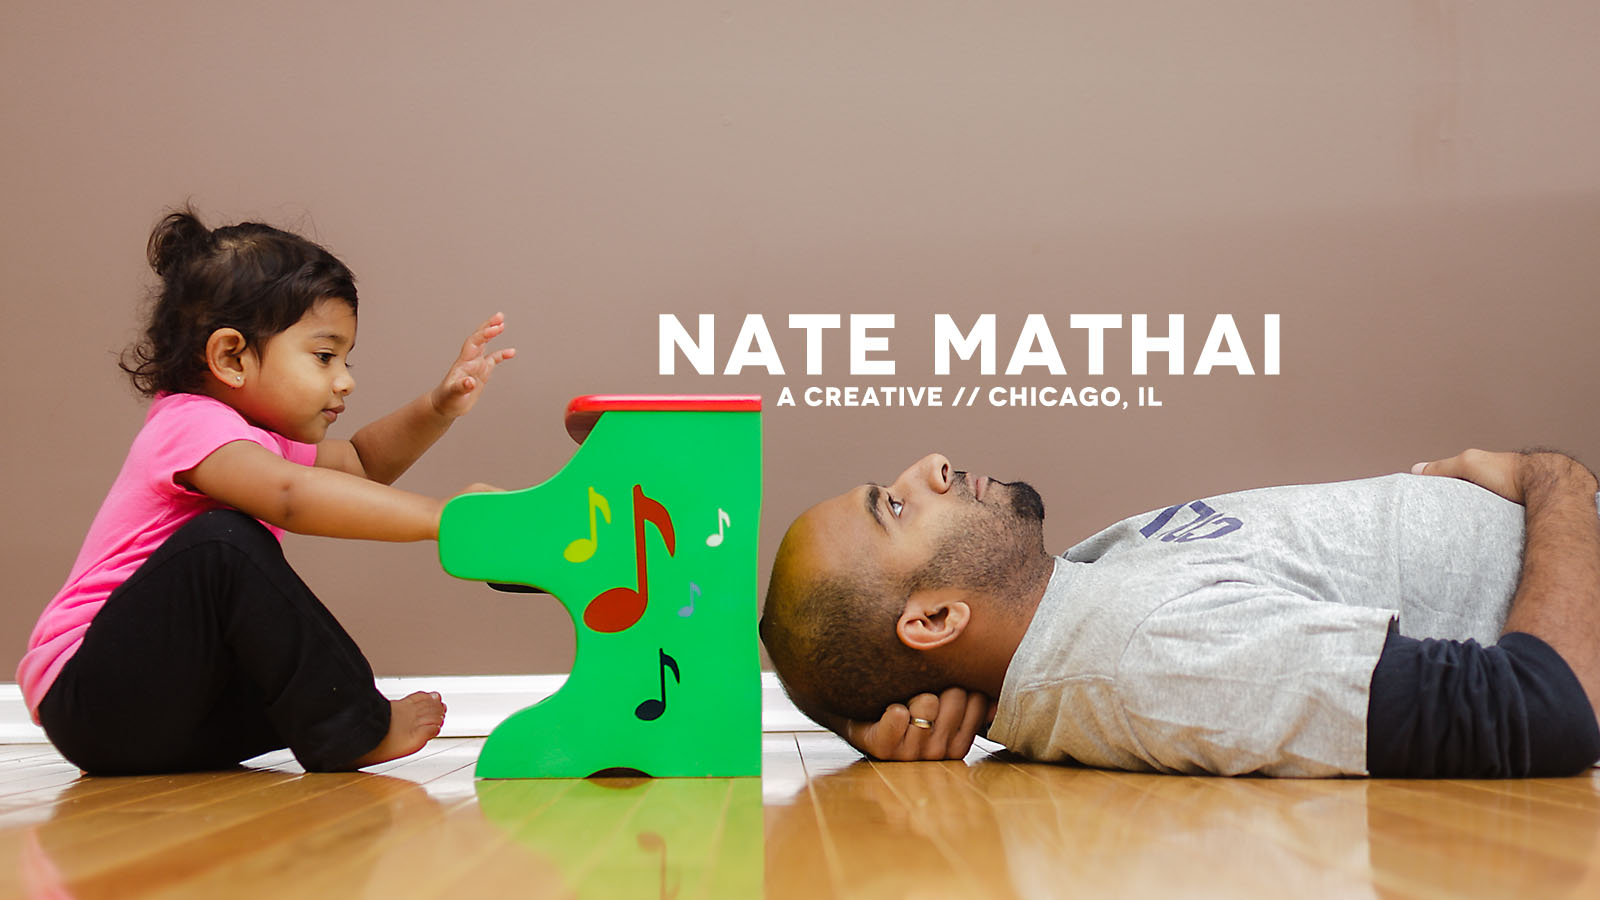 top image for In Between by chicago wedding photographer nate mathai